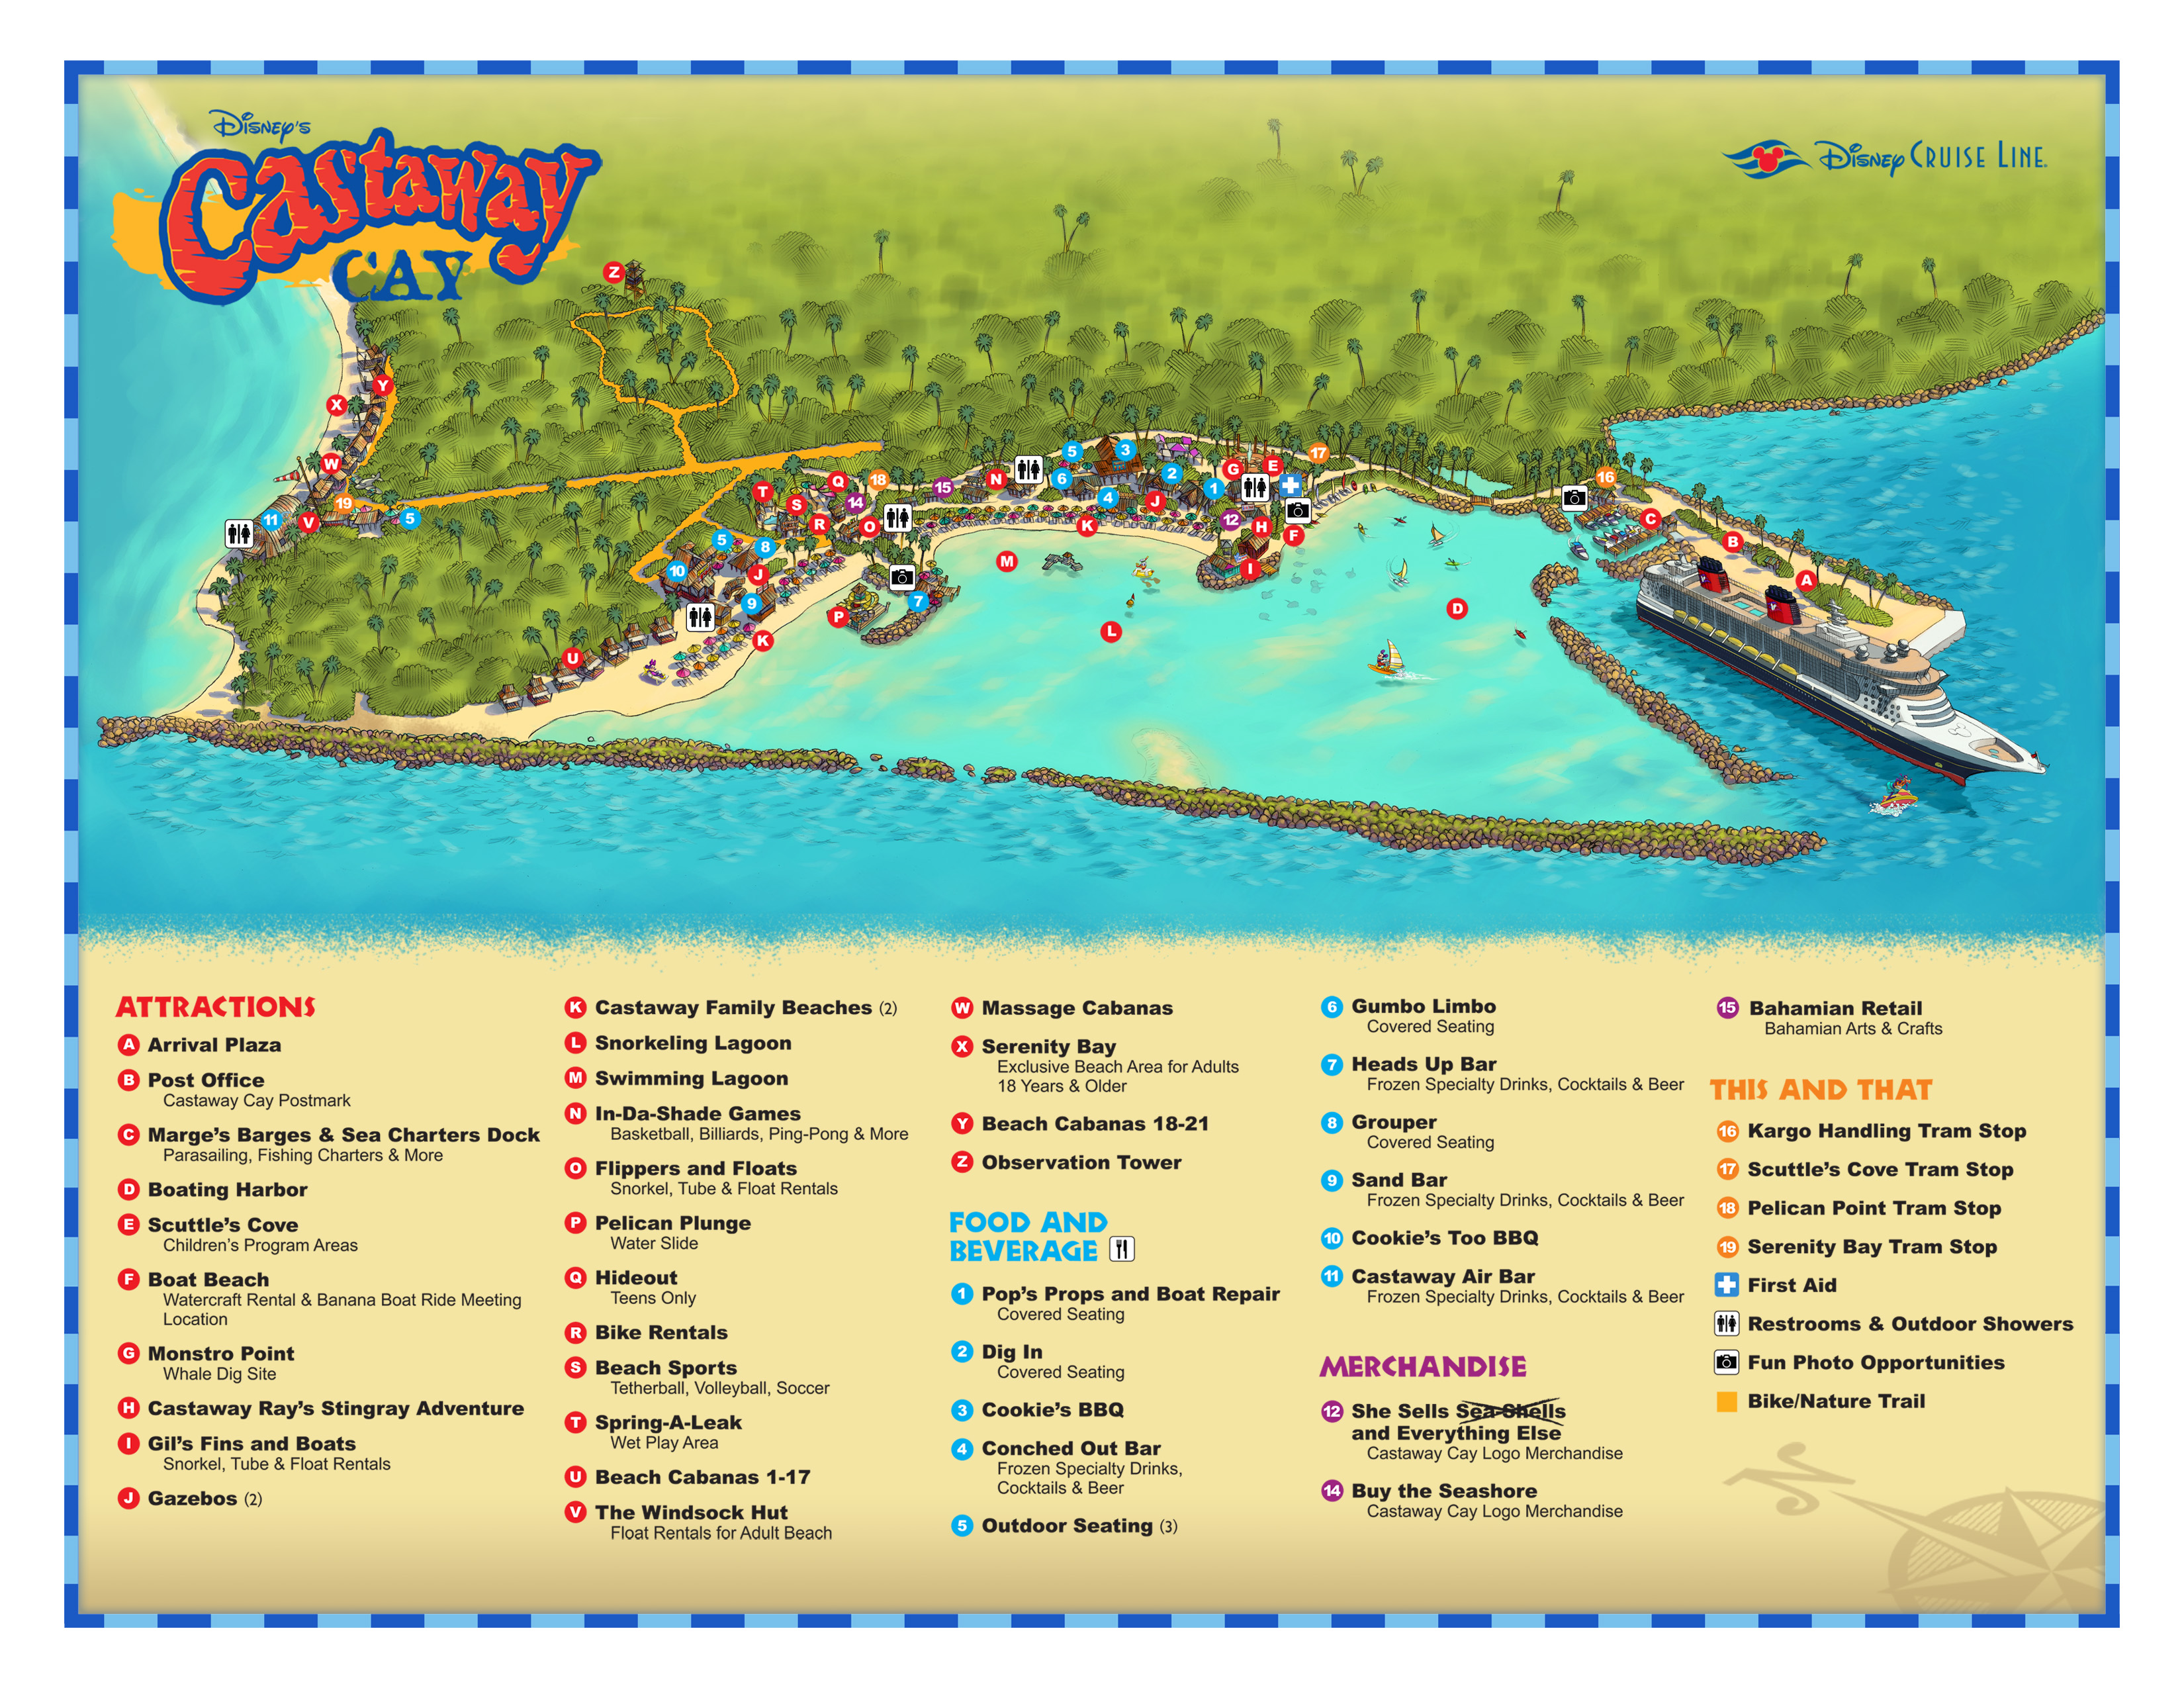 Castaway Cay Cruise Port Terminal Information For Port Of